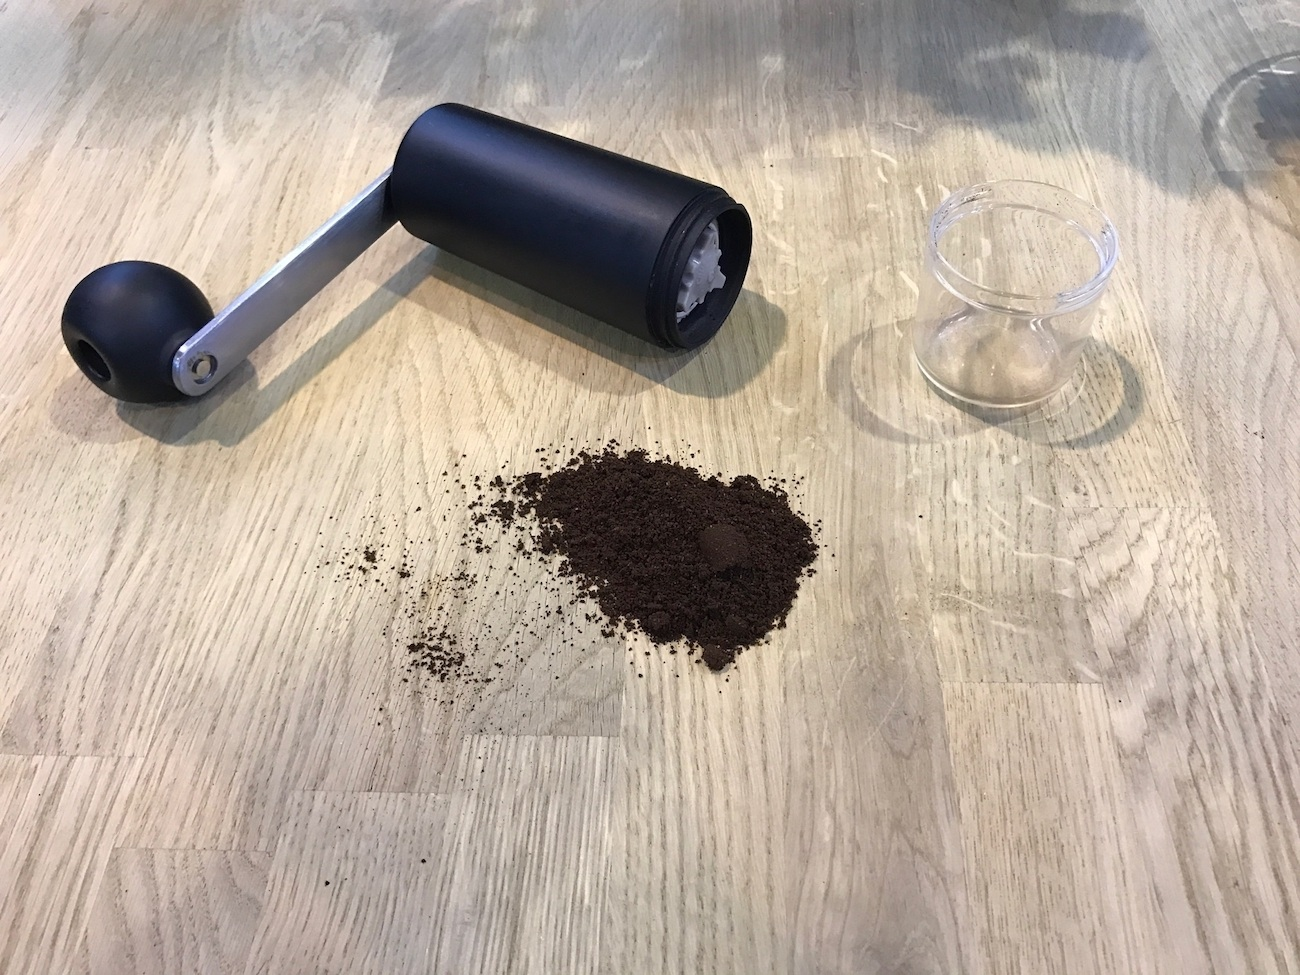 Columbia Versatile Coffee Grinder